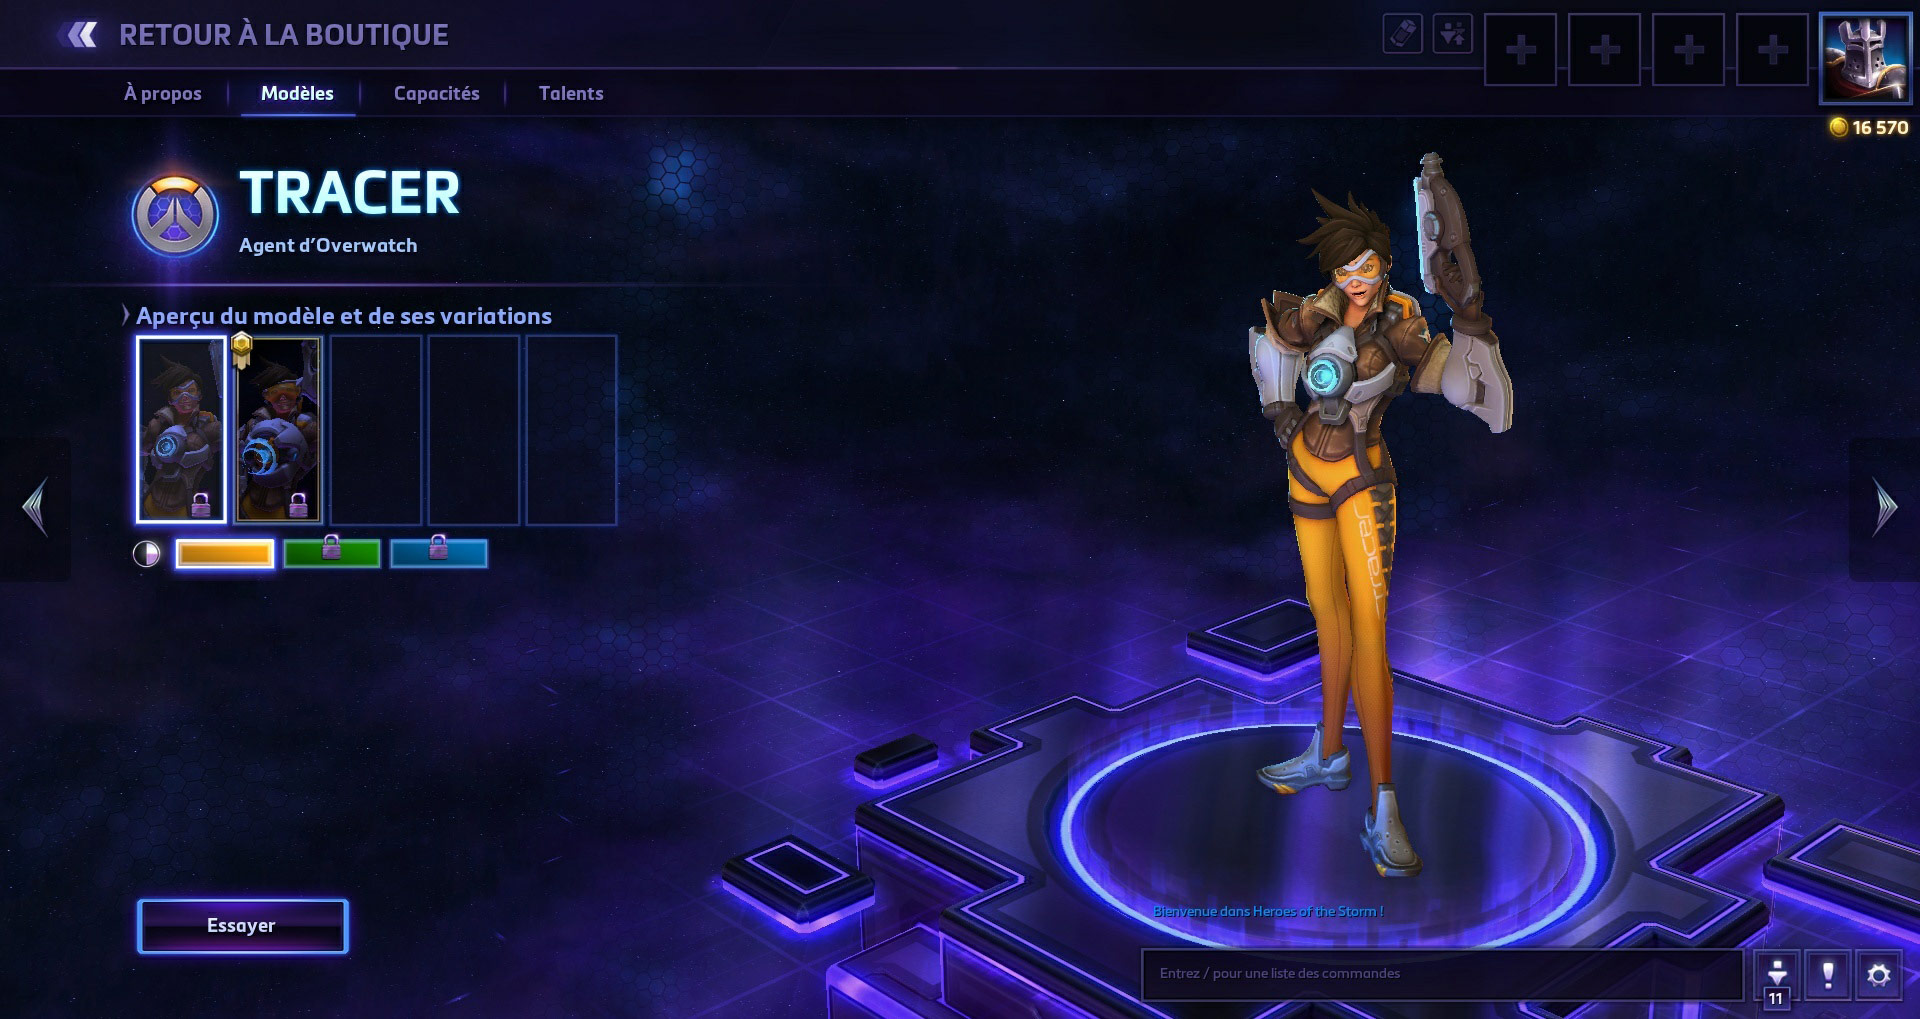 Apparence de Tracer dans Heroes of the Storm.